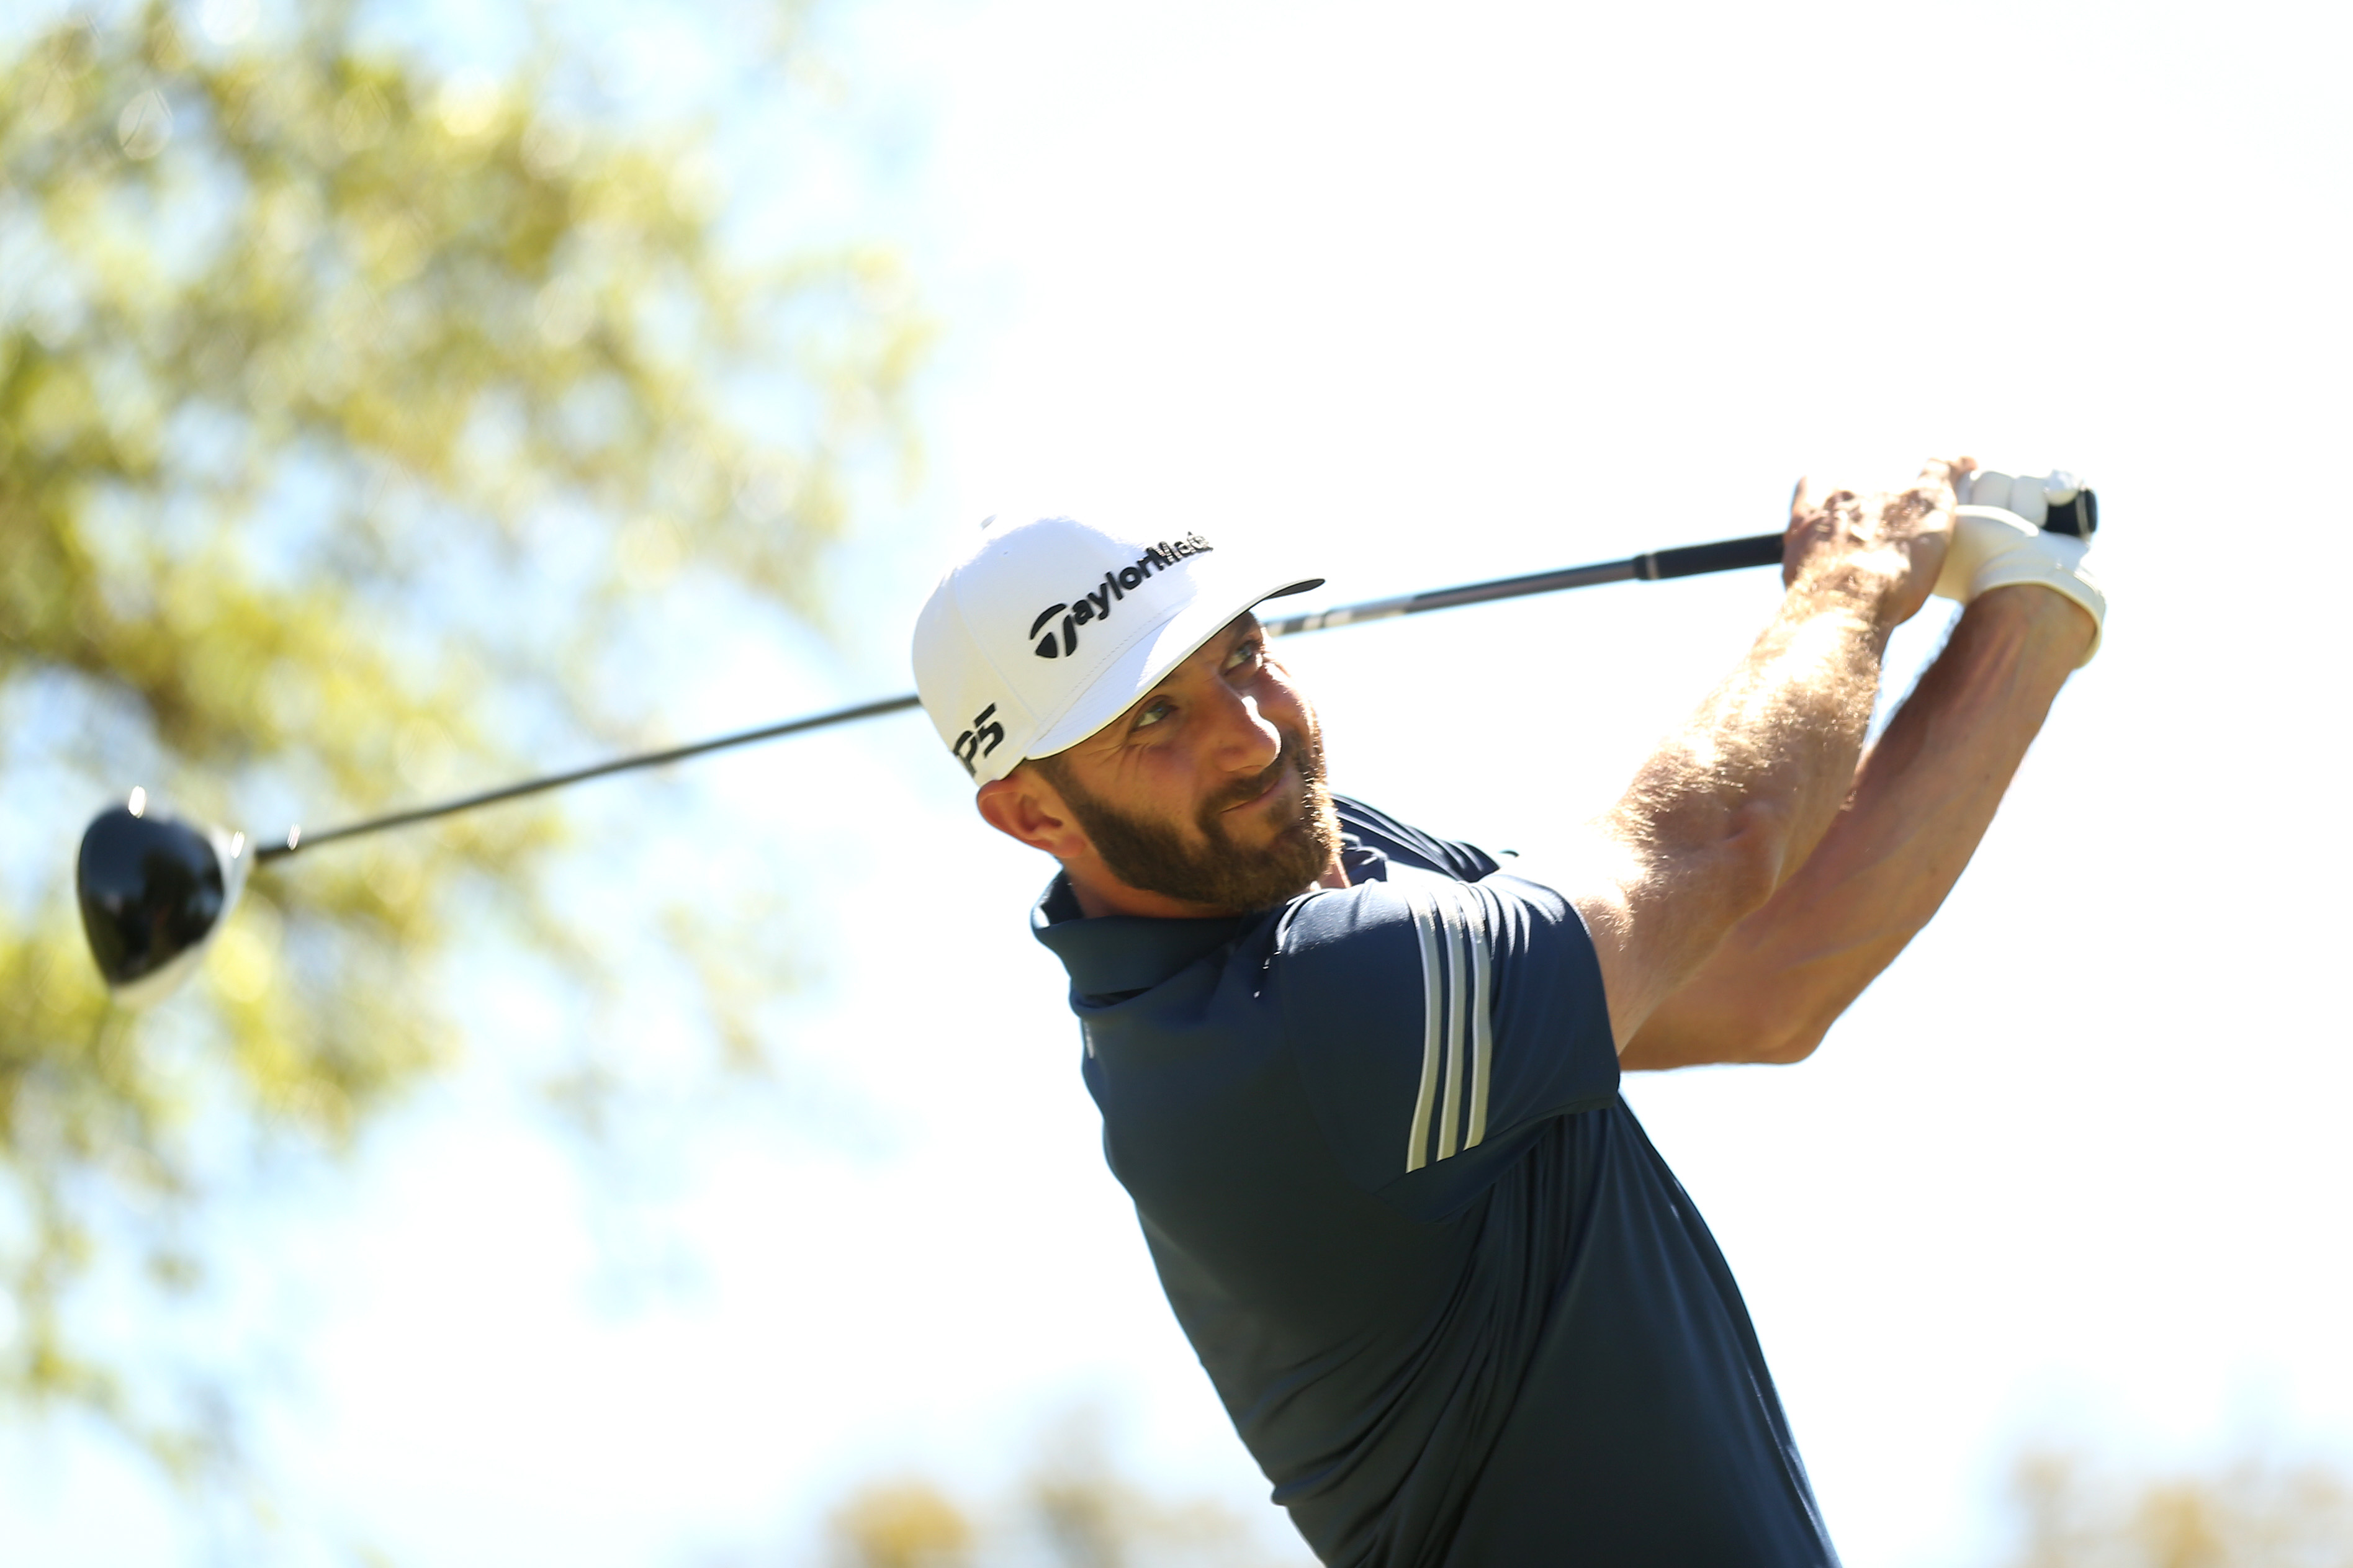 Dustin Johnson is looking to claim his fifth career World Golf Championship Sunday in Austin, Texas.